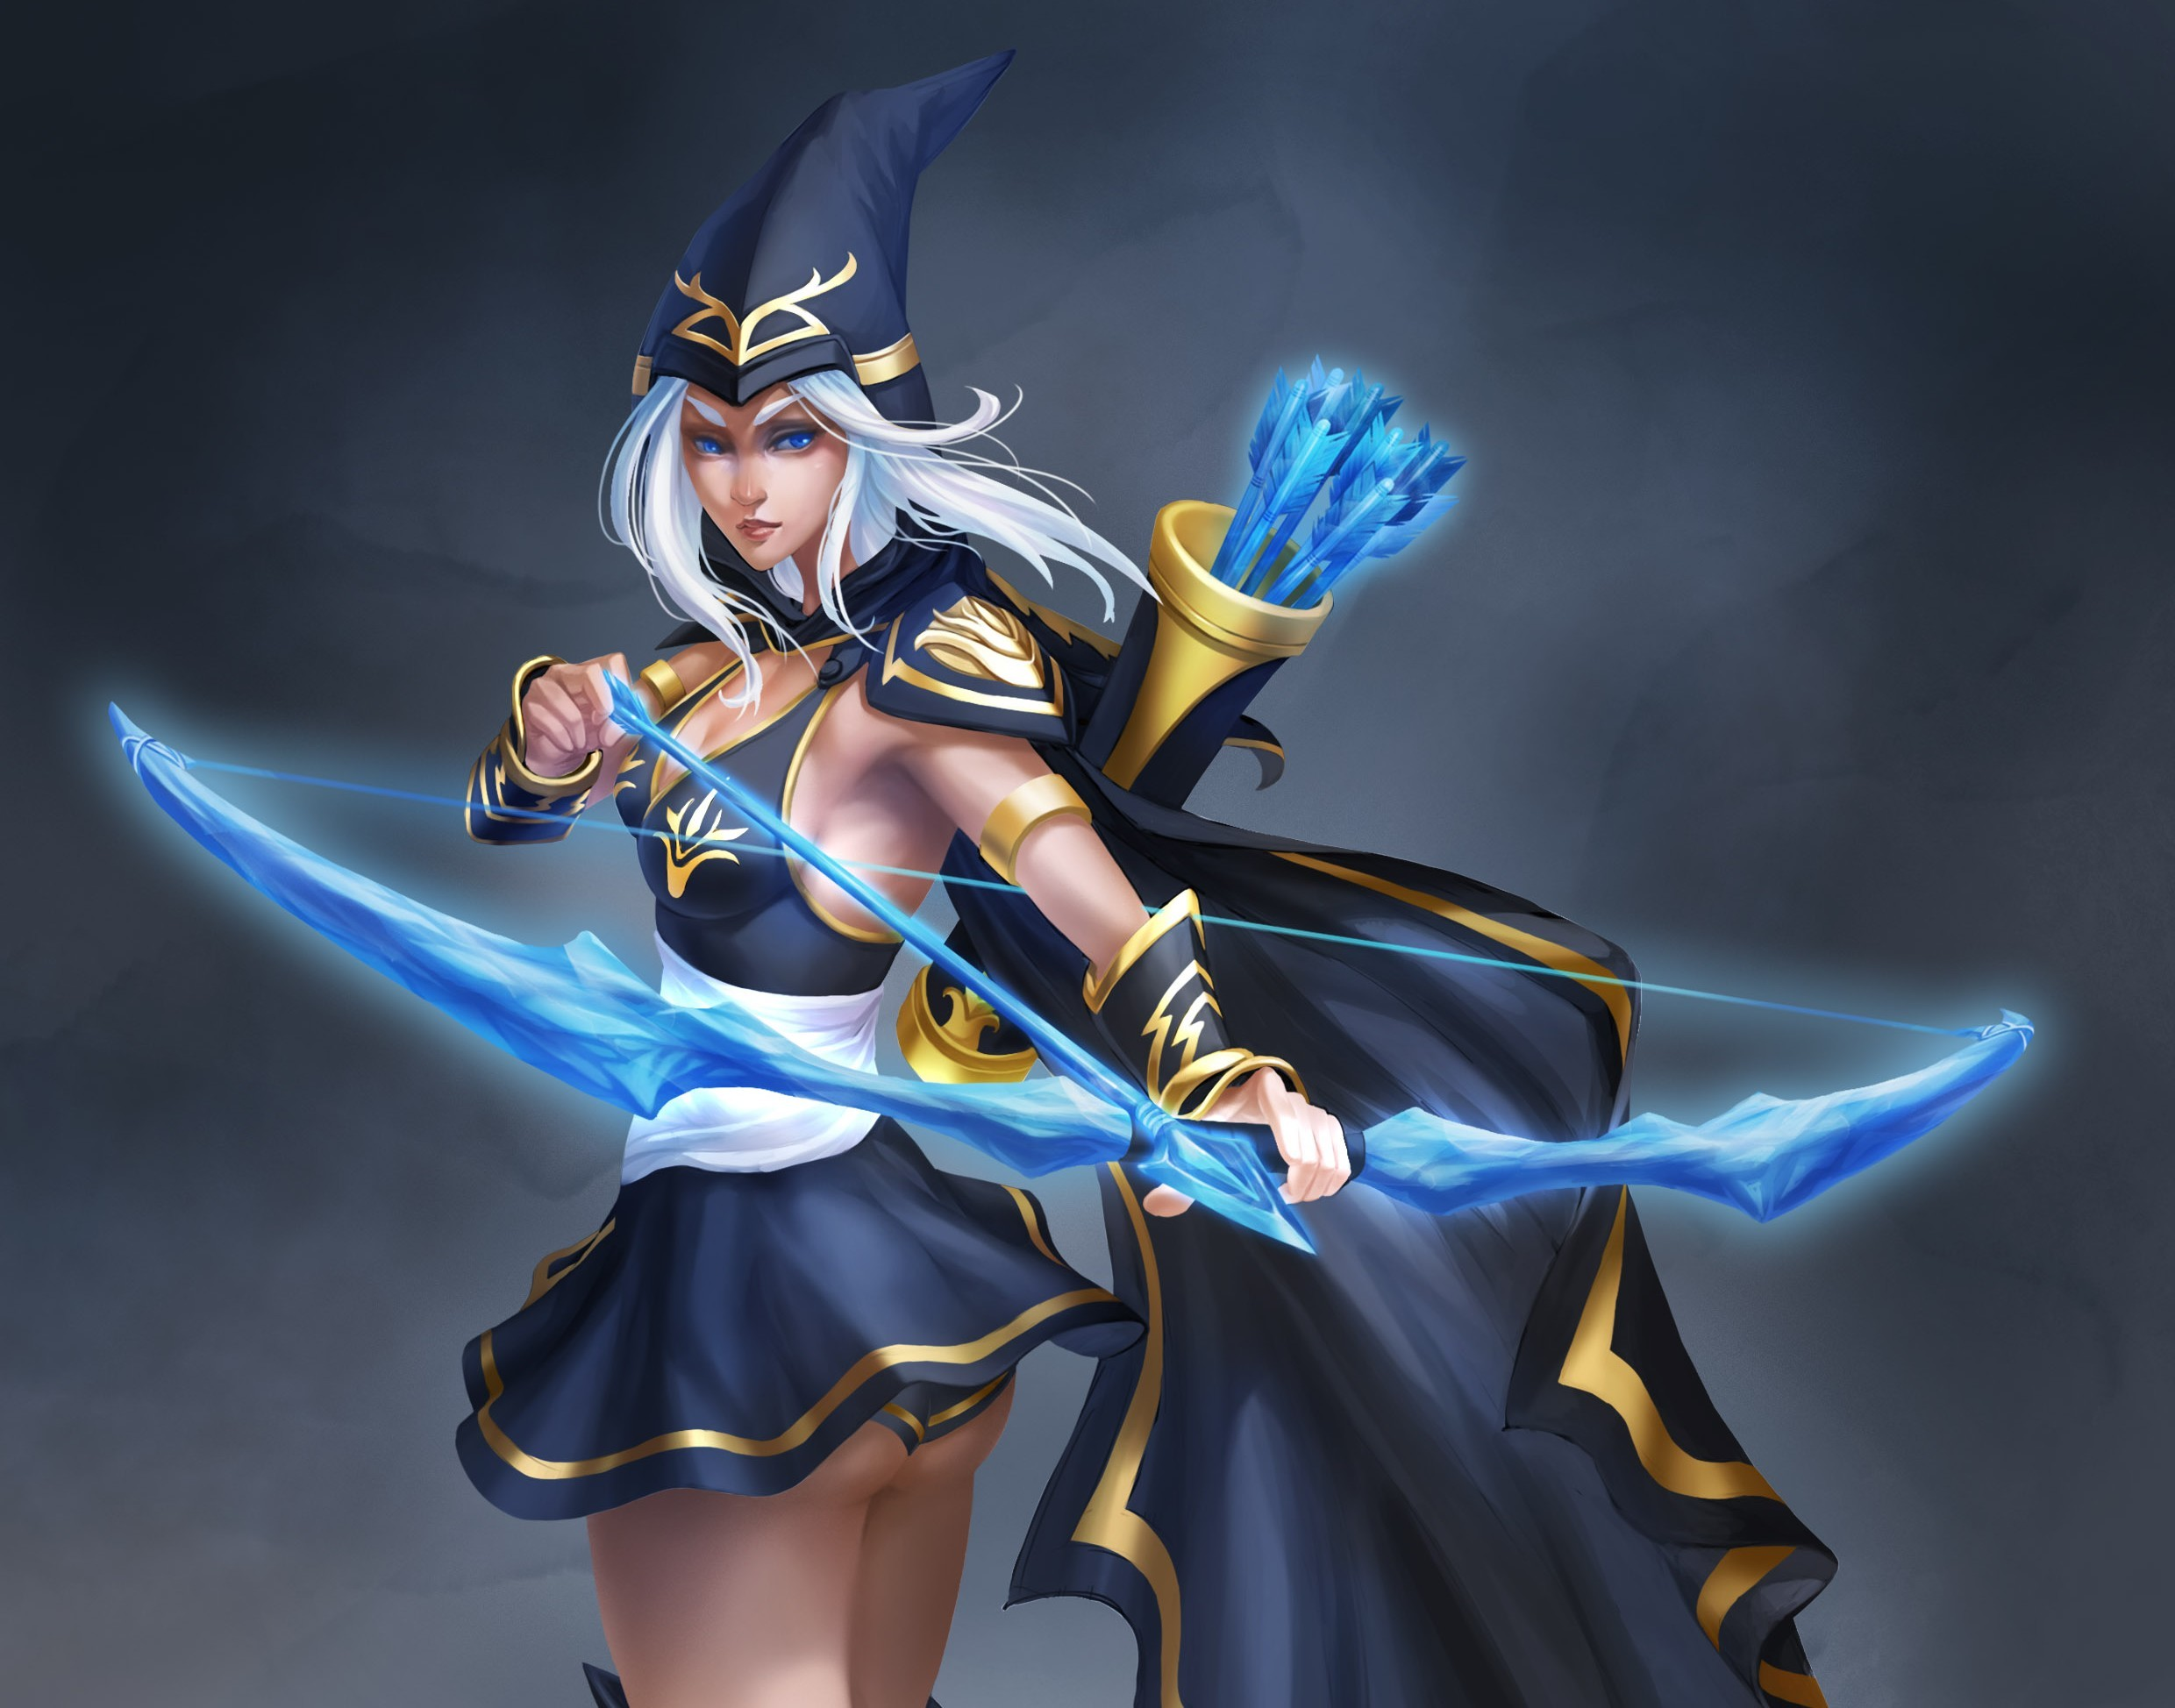 Sexy Ashe wallpaper